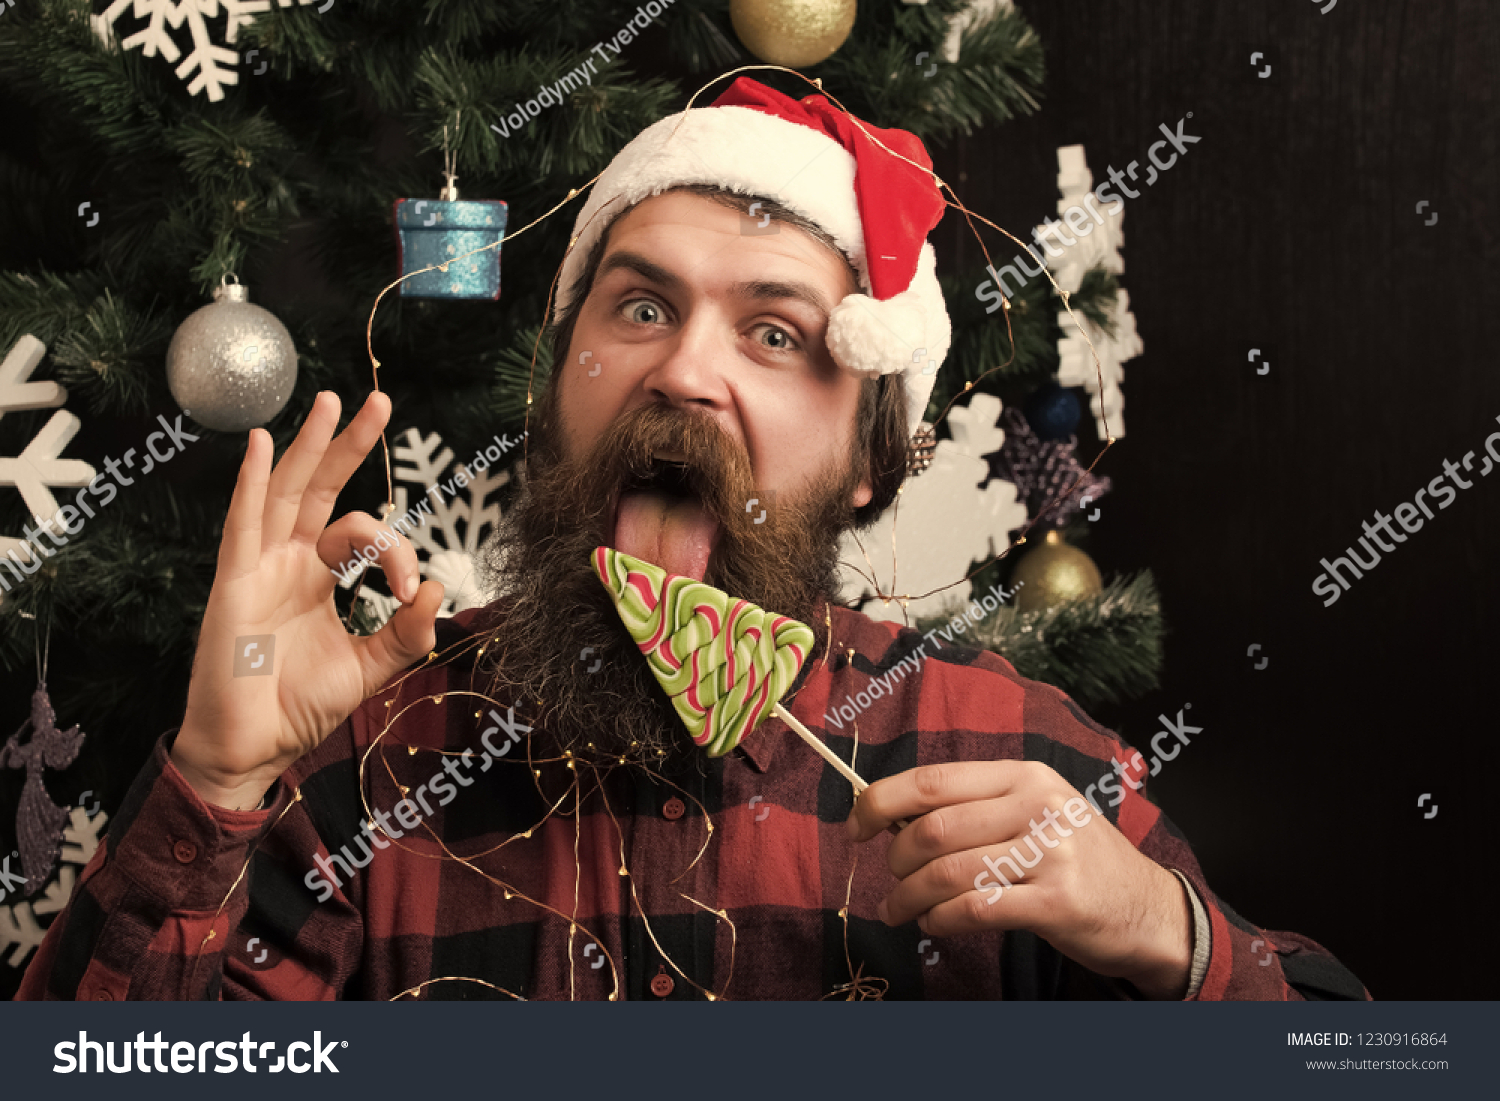 santa claus man in hat at decoration. Winter holiday and xmas. Party  celebration and